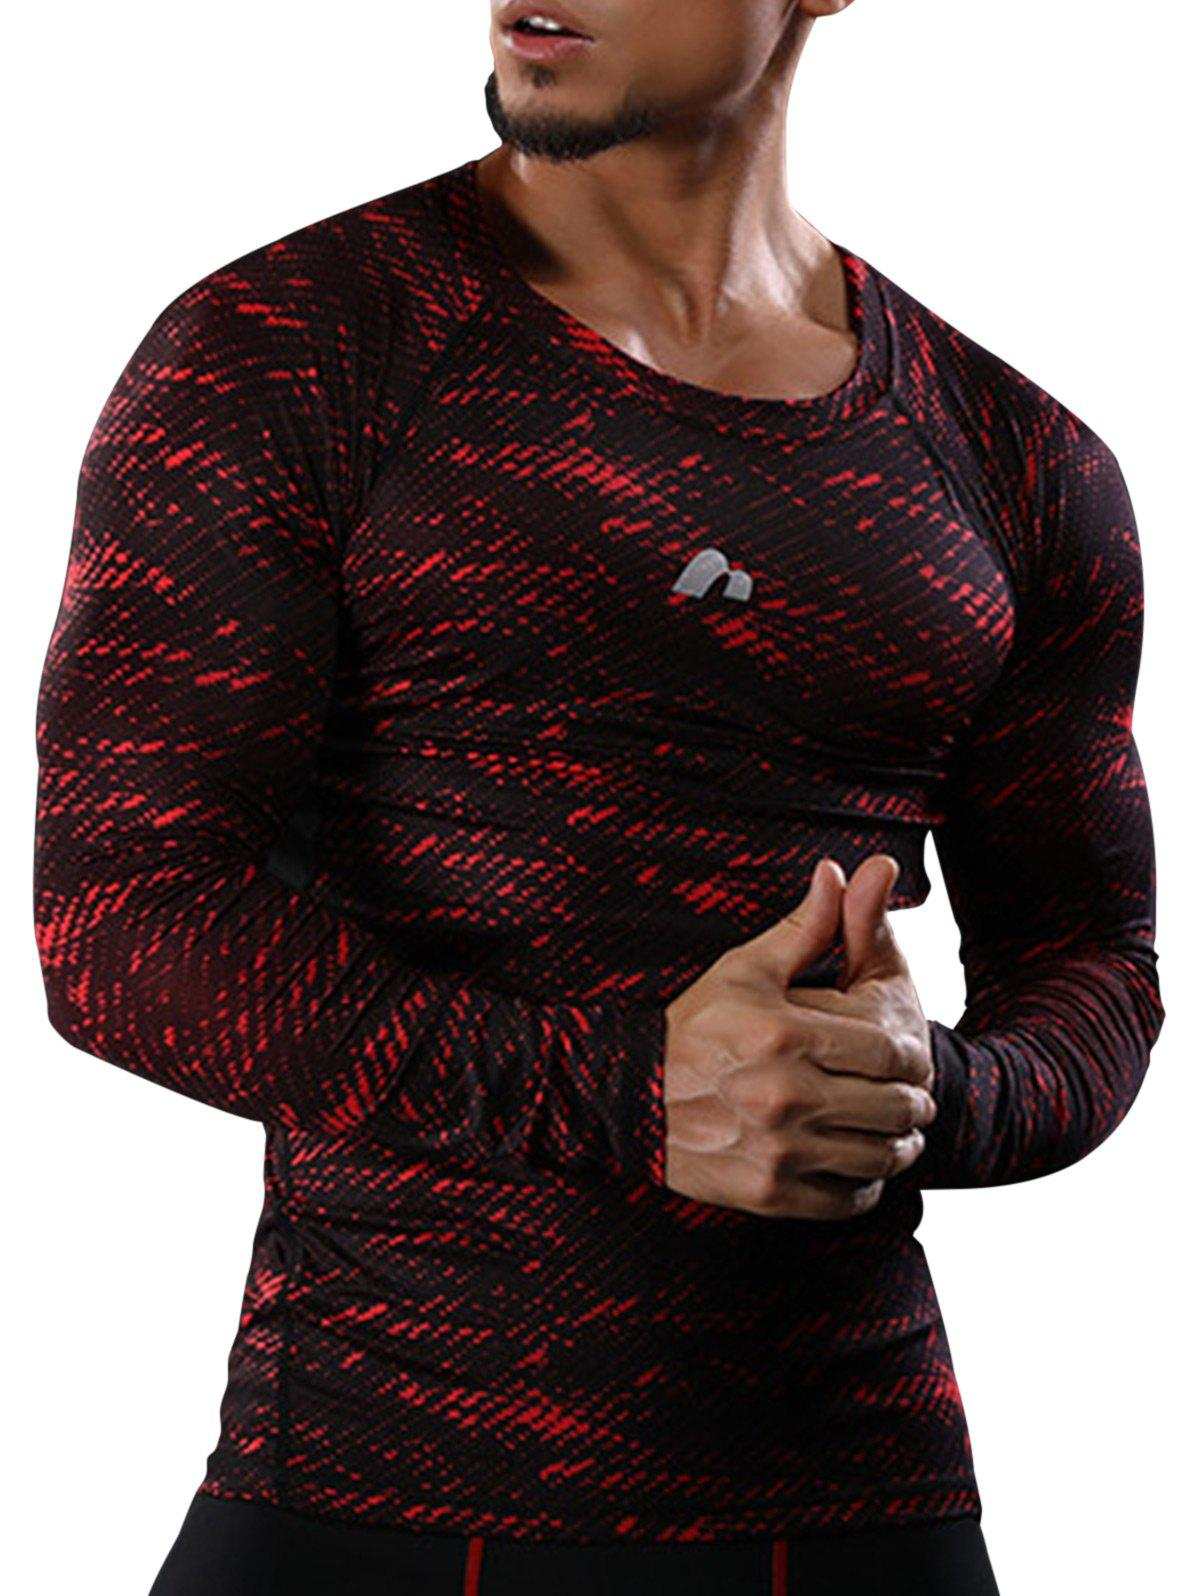 Camouflage Quick Dry Openwork Panel Gym T-shirtMEN<br><br>Size: M; Color: RED; Type: T-Shirt; Material: Polyester,Spandex; Pattern Type: Print; Weight: 0.1830kg; Package Contents: 1 x T-shirt;